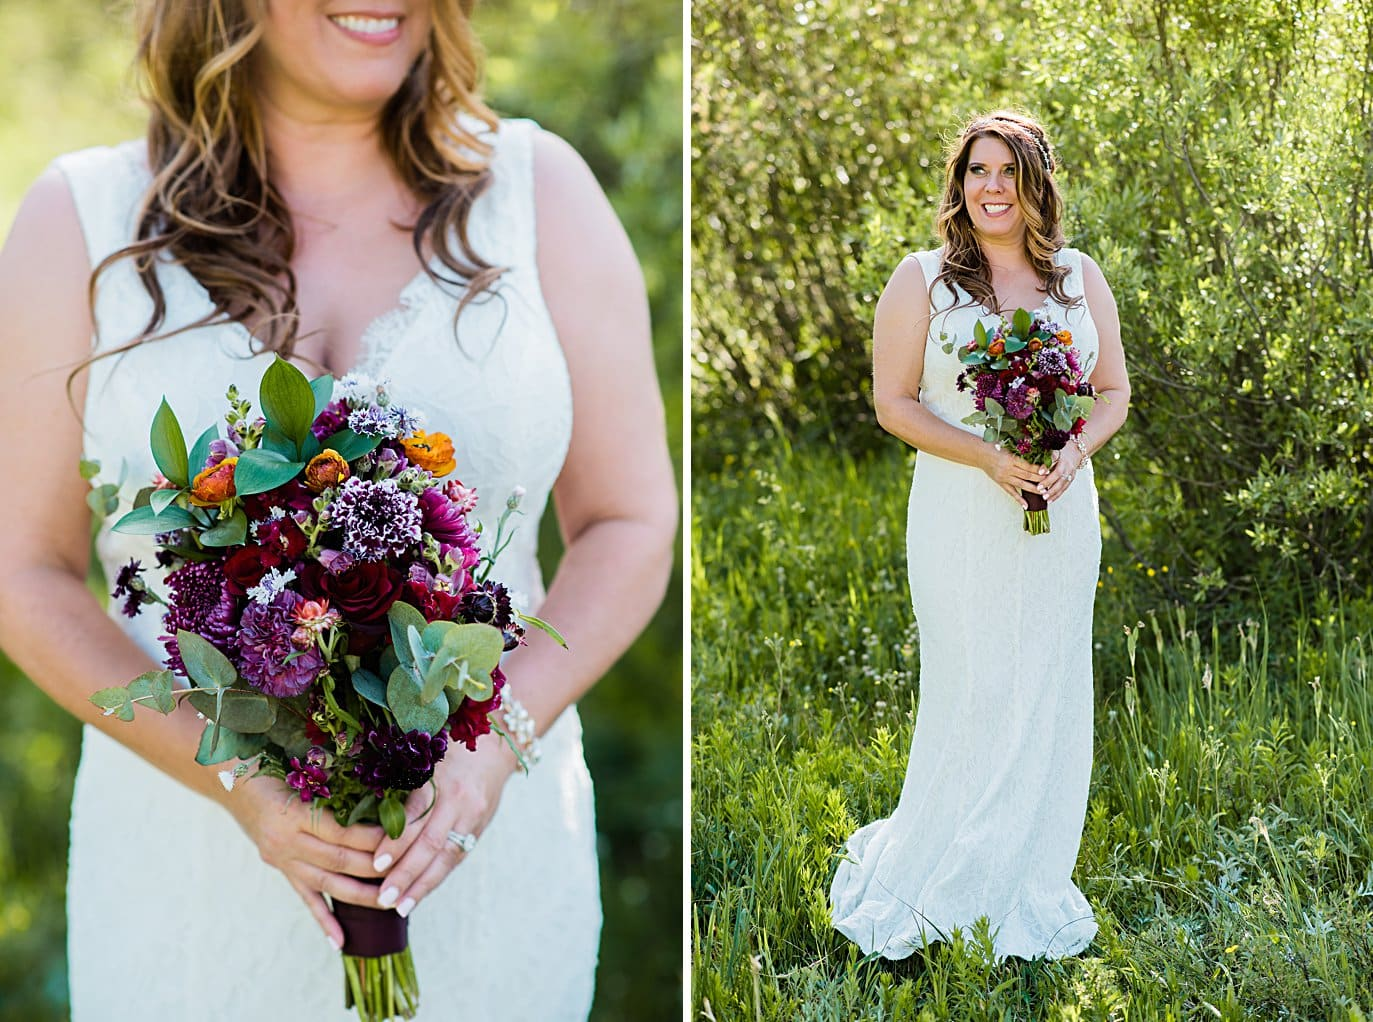 bride with colorful purple wildflower bouquet at Lily Lake Elopement by Estes Park elopement photographer Jennie Crate